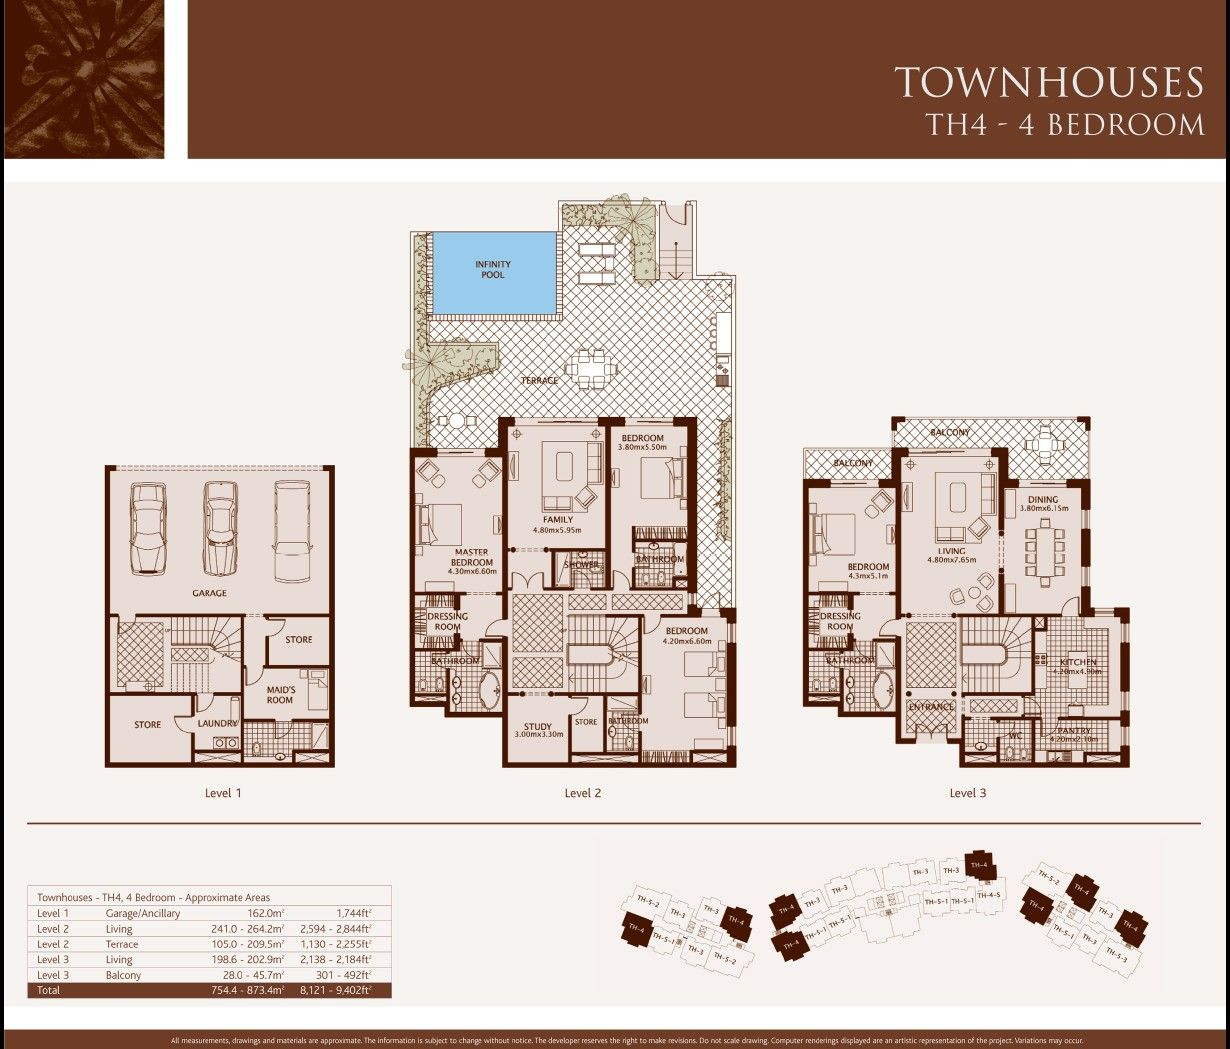 Fresh townhouse floorplans cool home design contemporary for 5 bedroom townhouse floor plans